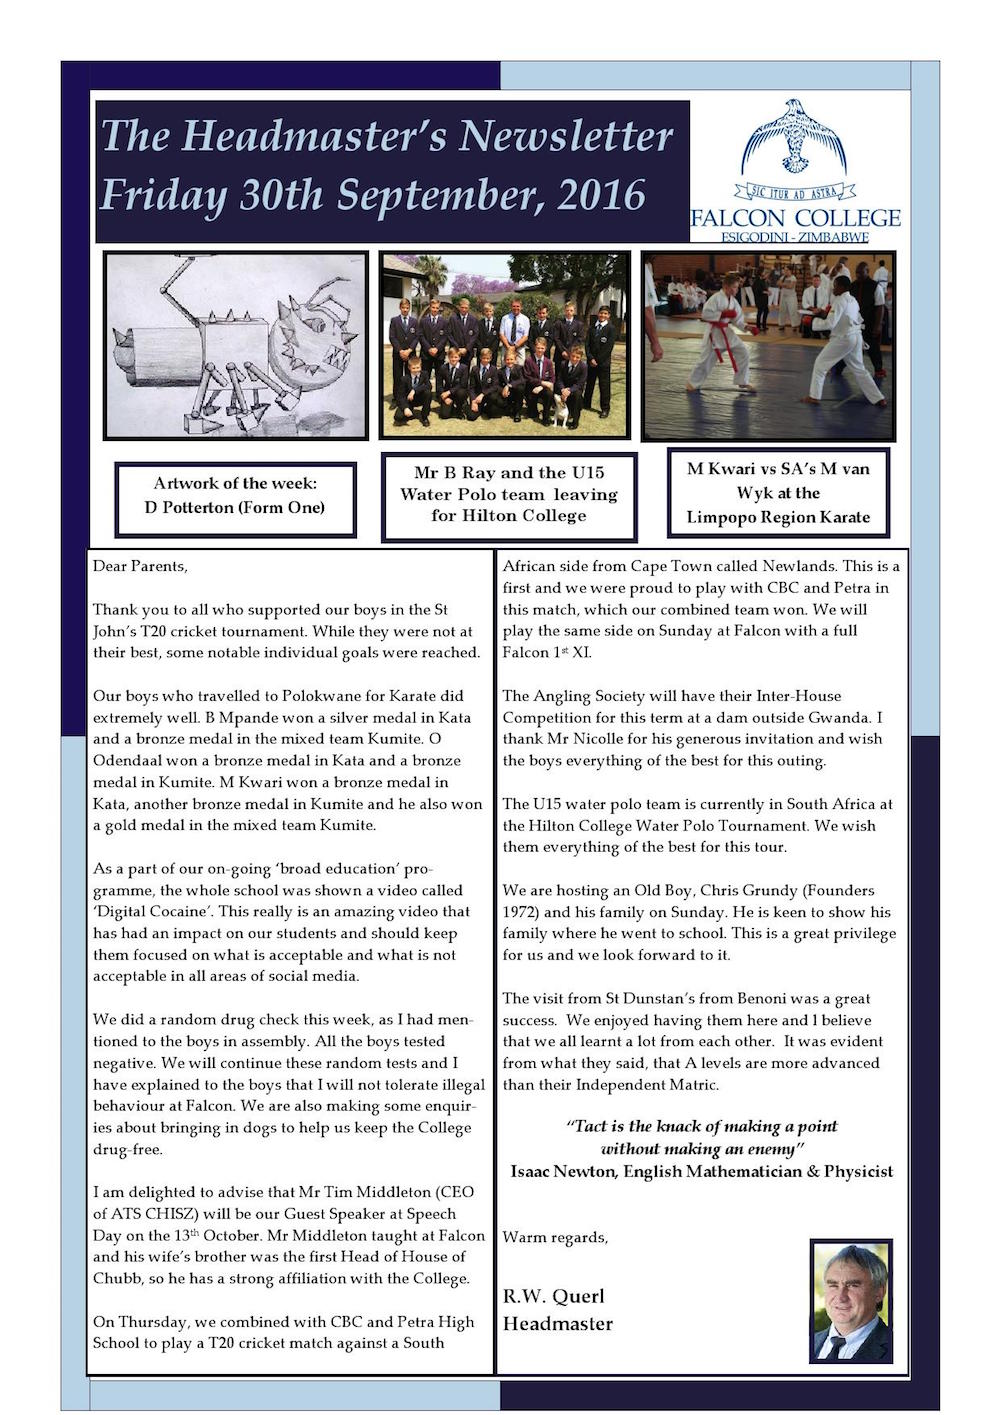 headmasters-newsletter-friday-30th-september-2016-edited_000001